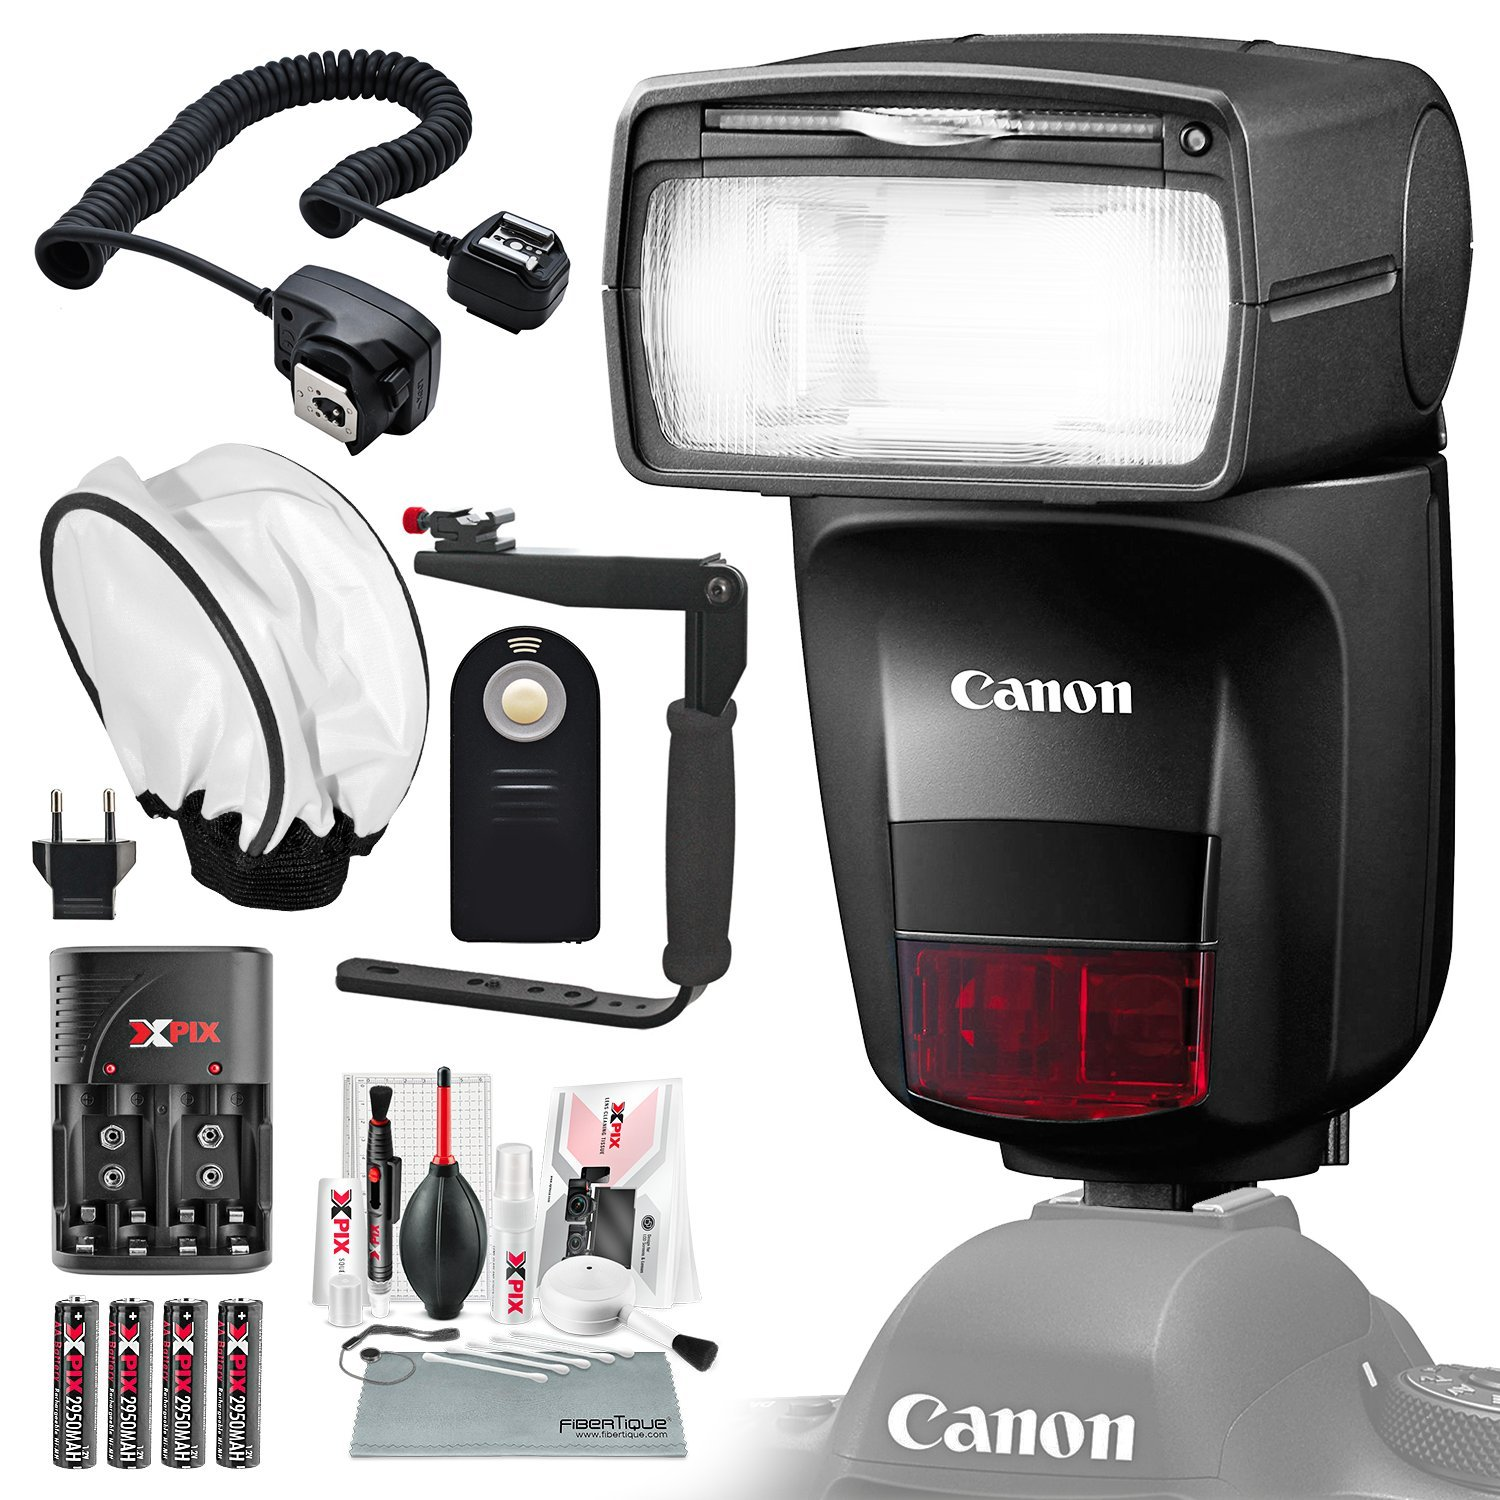 Canon Speedlite 470EX-AI Flash with Diffuser, Batteries & Charger Kit, Xpix Cleaning Accessories, and Basic Photo Bundle